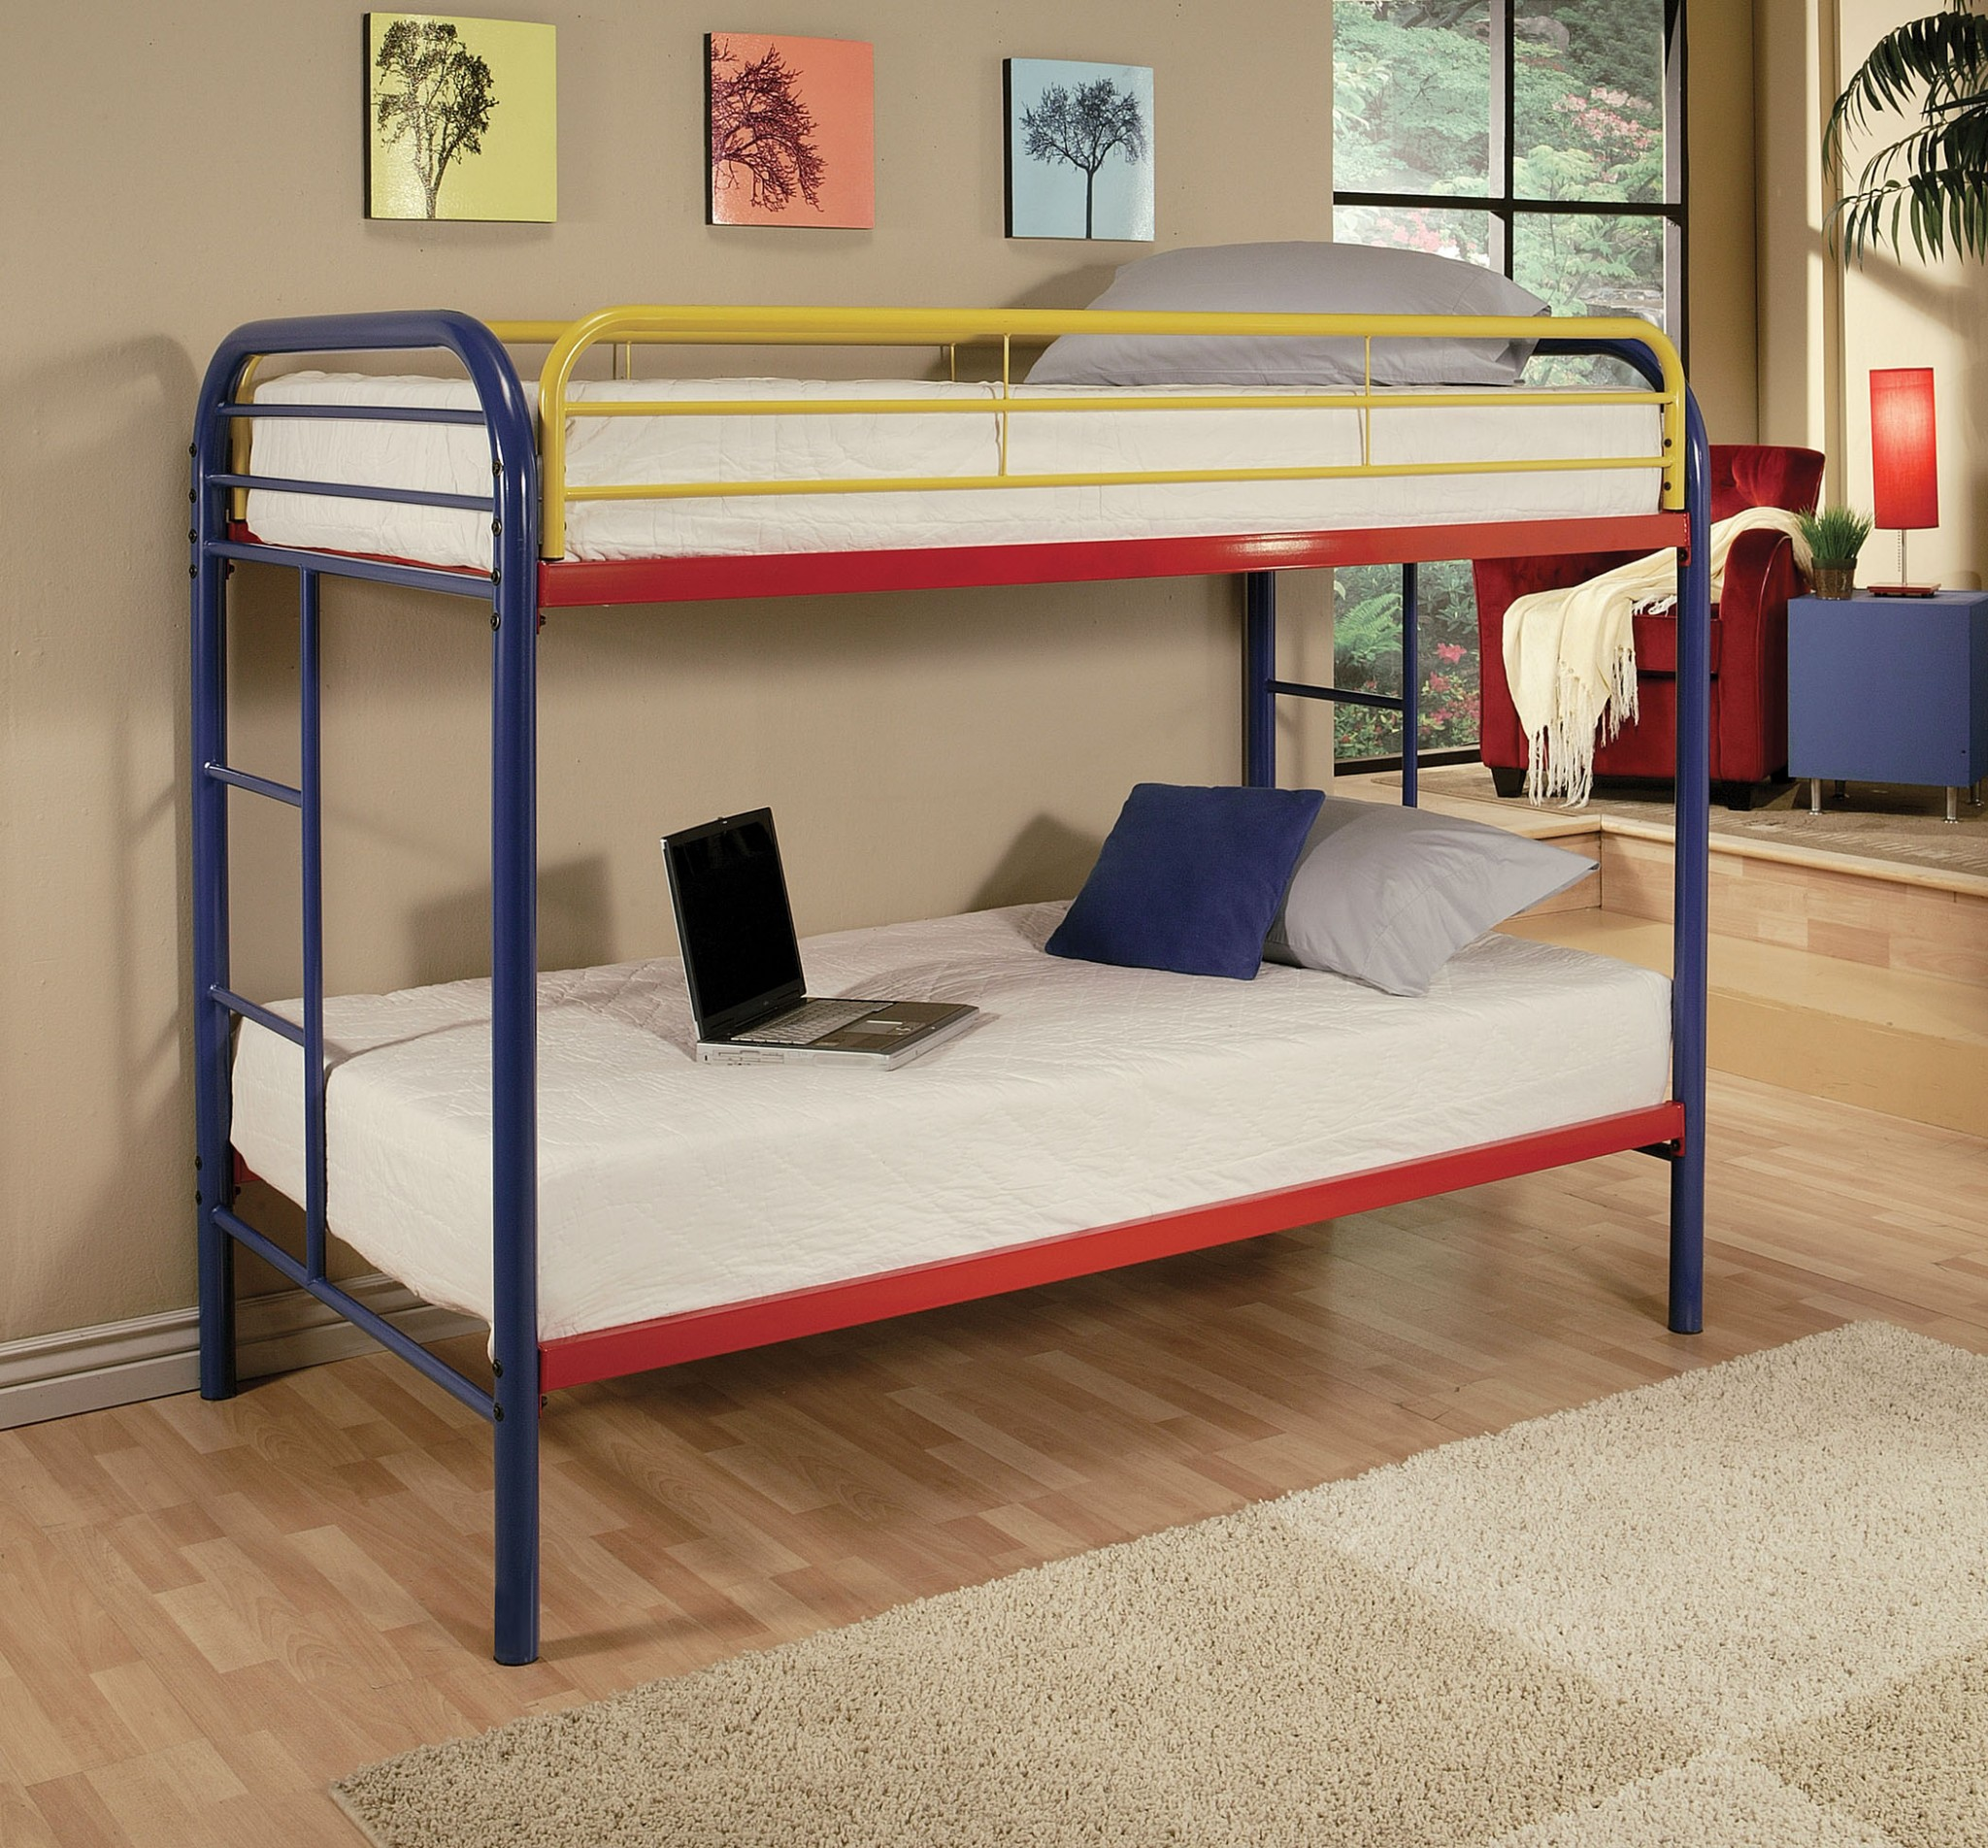 "78"" X 41"" X 60"" Twin Over Twin Rainbow Metal Tube Bunk Bed"